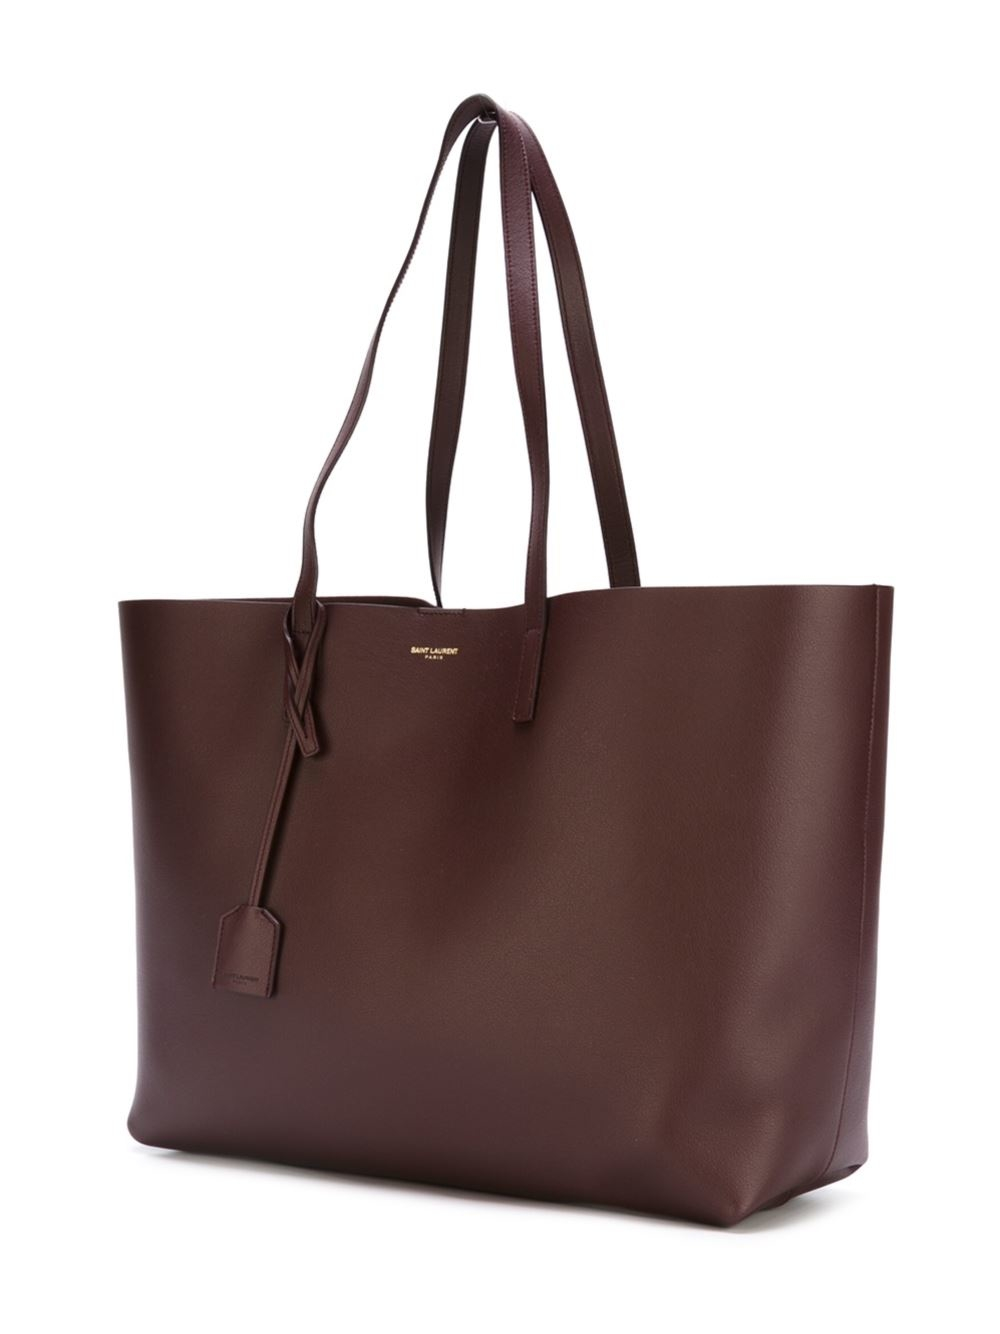 saint laurent classic shopper tote in brown lyst. Black Bedroom Furniture Sets. Home Design Ideas